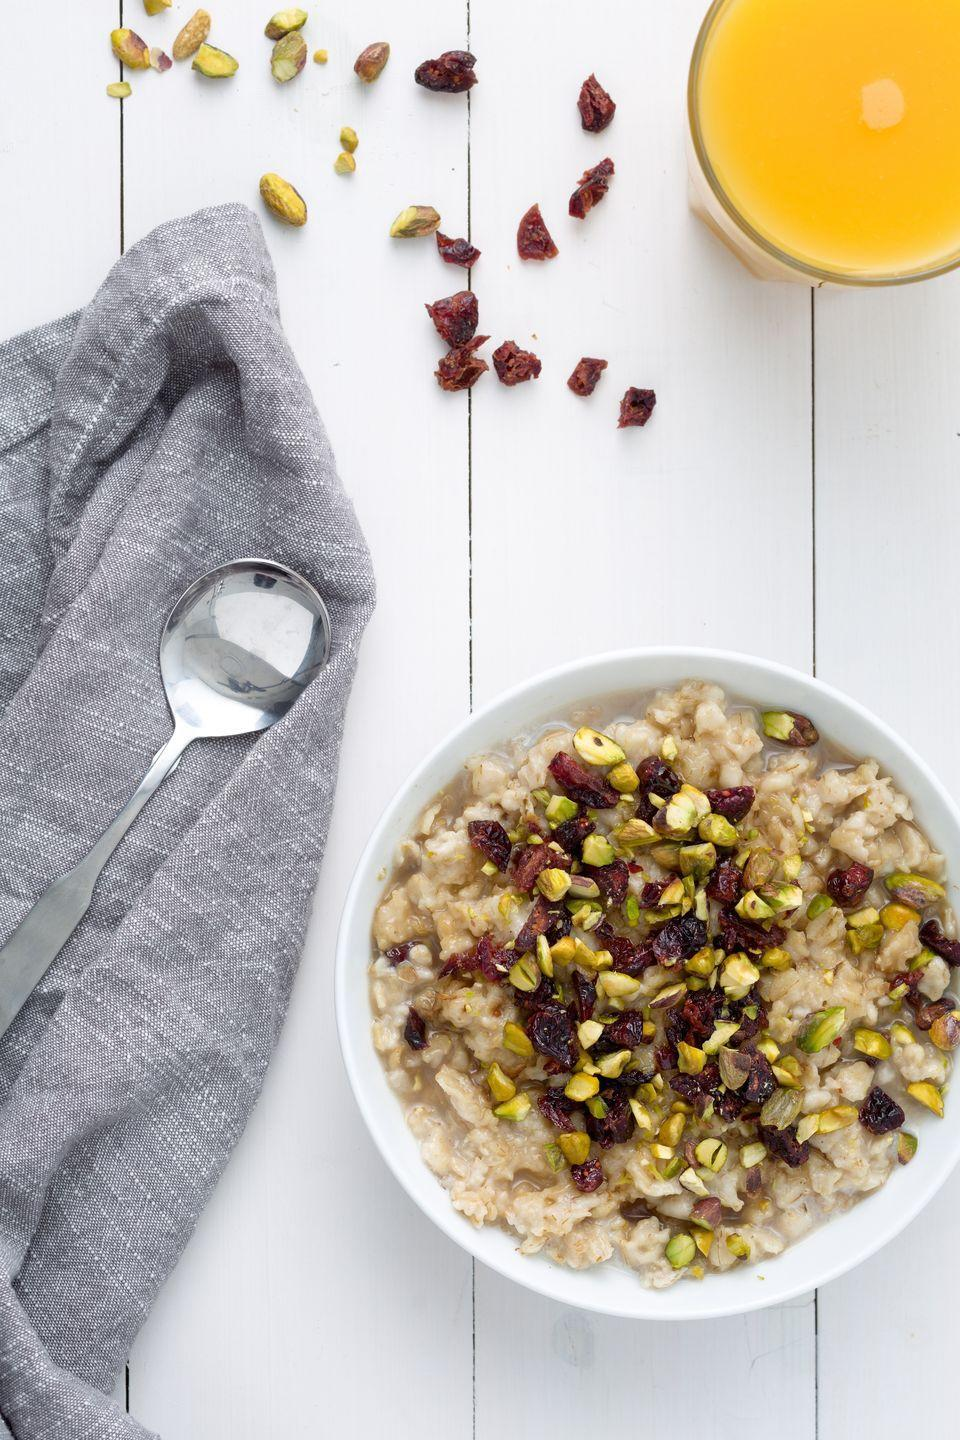 "<p>If you're the type who doesn't want mini marshmallows and chocolate stirred into oatmeal (we know you're out there somewhere), we got you: Top with maple syrup, cranberries, and pistachios. </p><p>Get the recipe from <a href=""/cooking/recipe-ideas/recipes/a44505/maple-oatmeal-with-cranberries-and-pistachios-recipe/"" data-ylk=""slk:Delish"" class=""link rapid-noclick-resp"">Delish</a>.<br></p>"